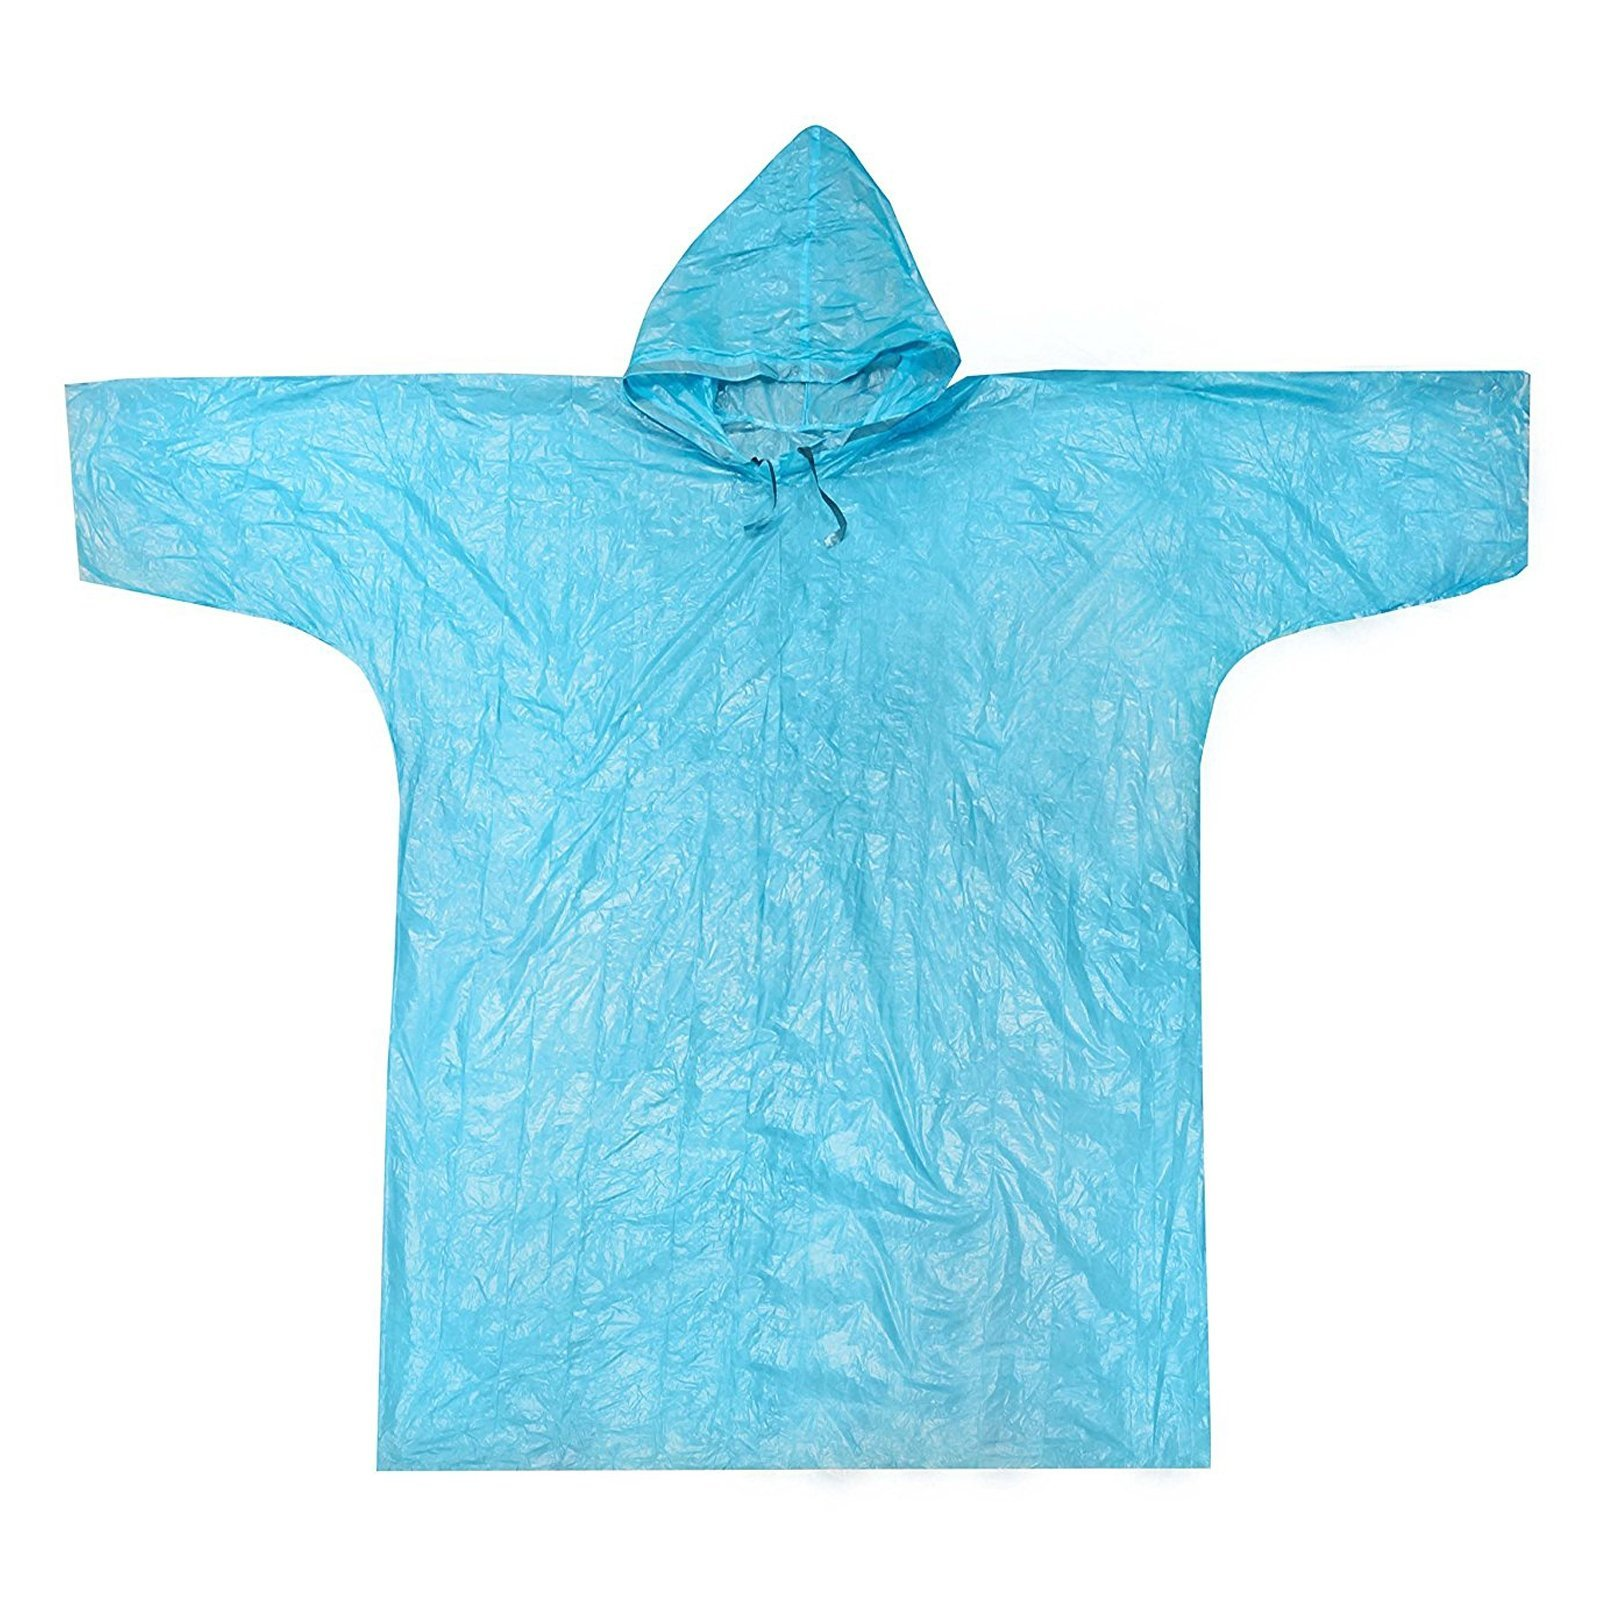 (4 Pack) ASR Outdoor Clear Emergency Poncho Set (3 Colors) by ASR Outdoor